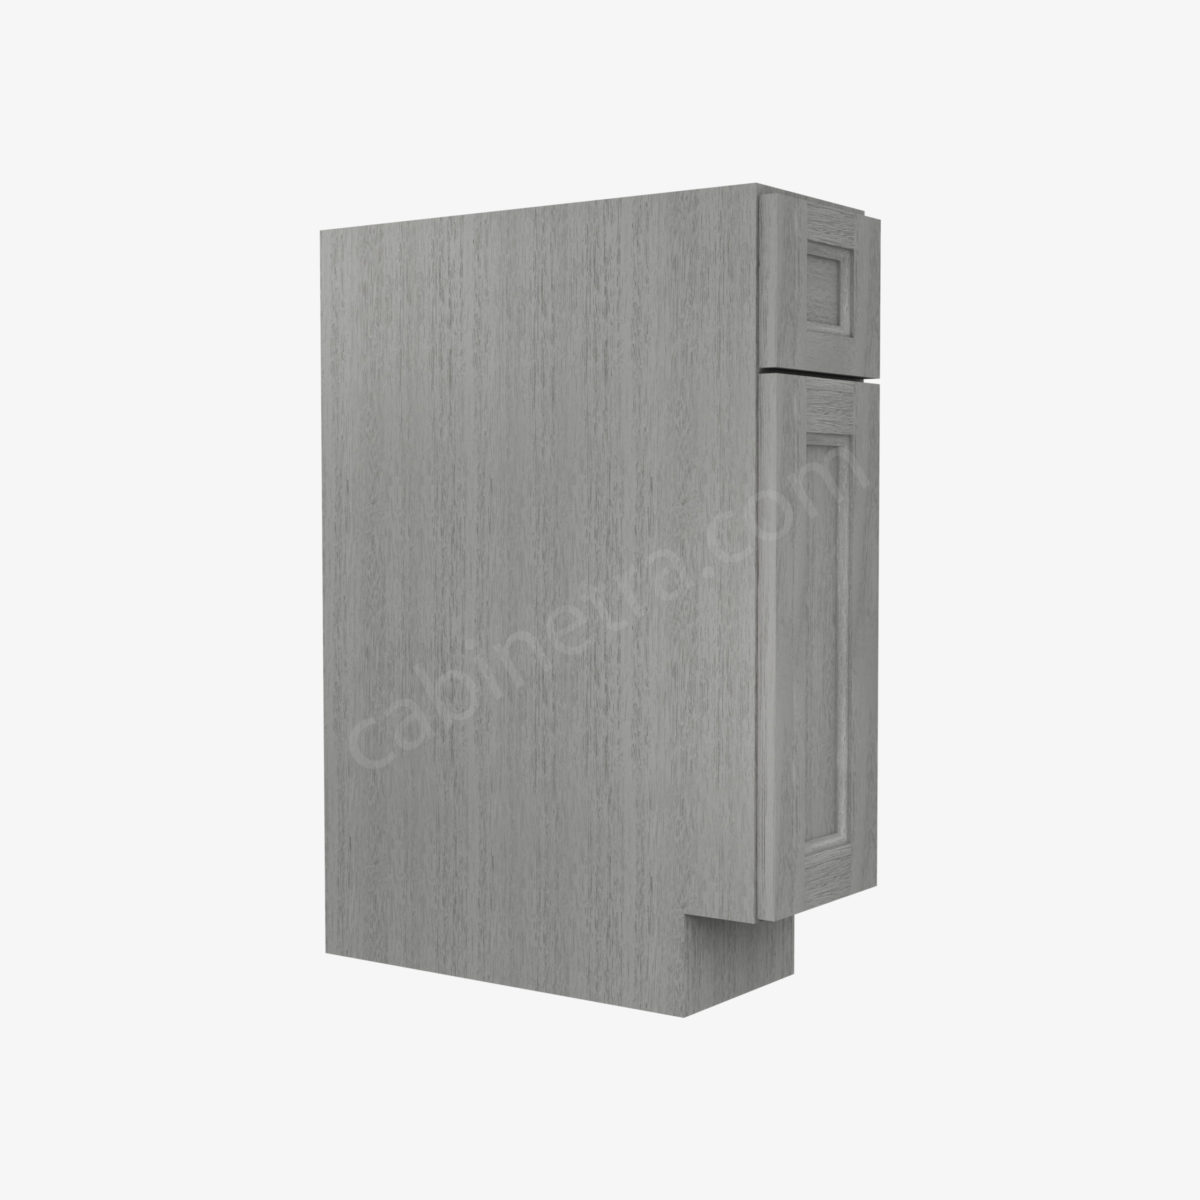 TG B09 4 Forevermark Midtown Grey Cabinetra scaled